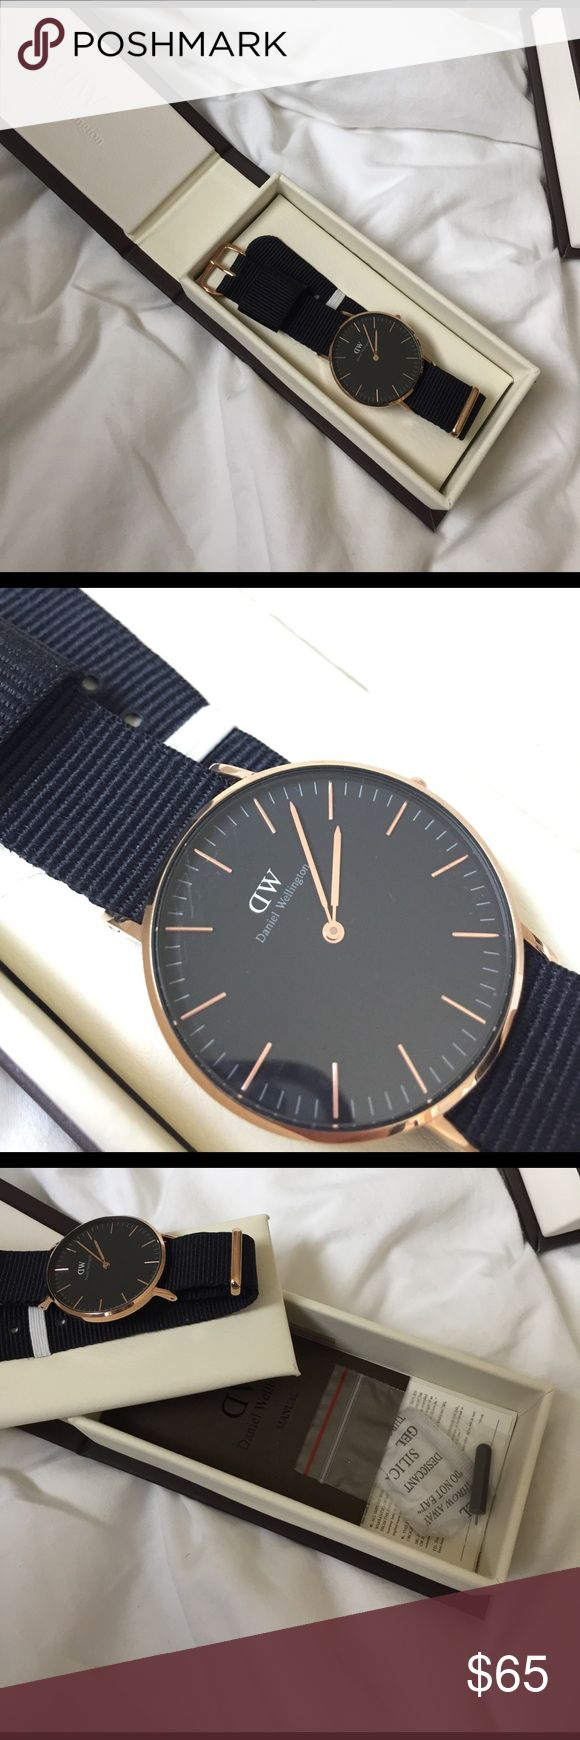 DANIEL WELLINGTON rose gold on black watch NWT slightly scratched face, price reflects this flaw. only worn twice! Daniel Wellington Accessories Watches